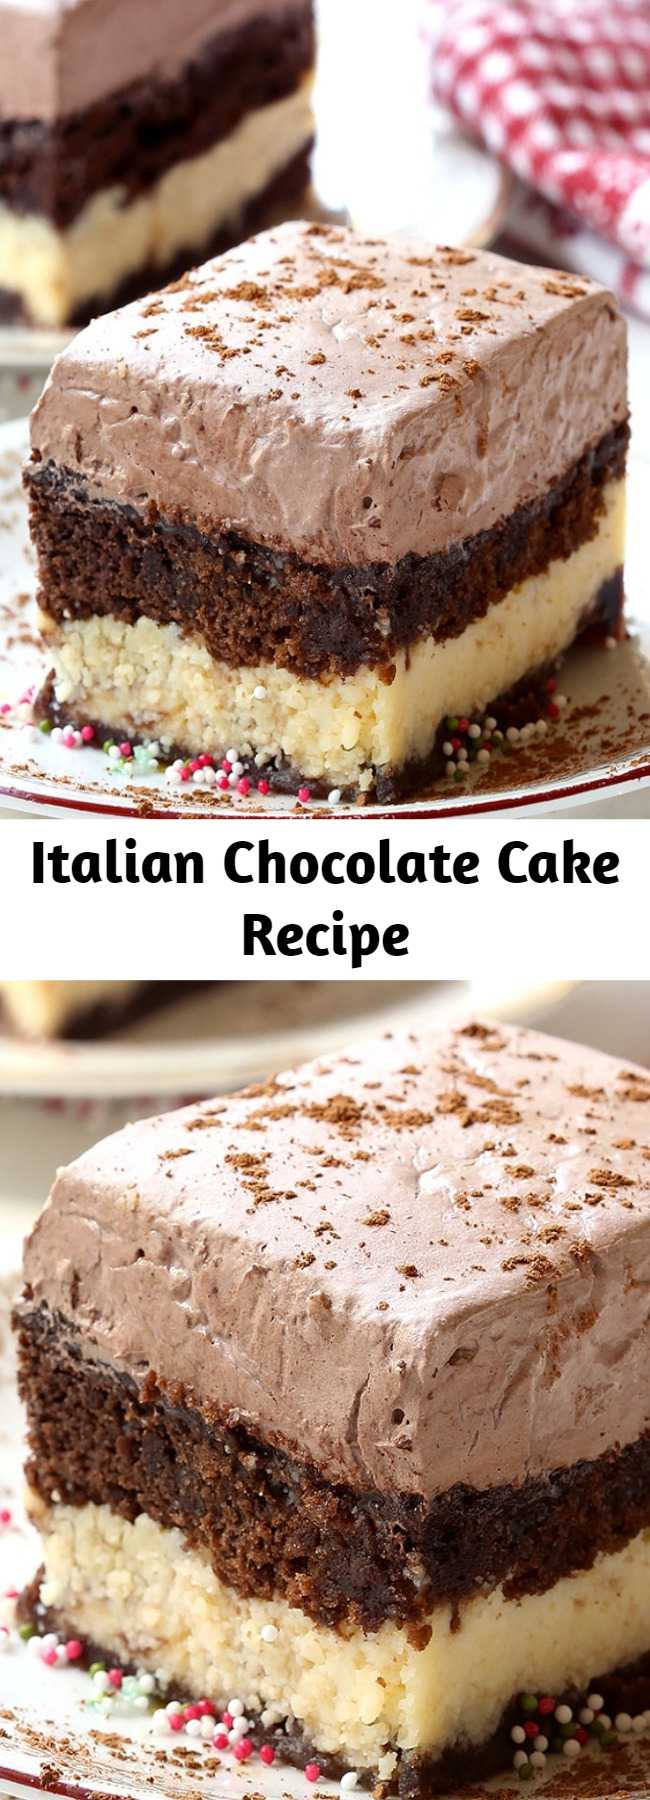 Italian Chocolate Cake Recipe - A combination of chocolate marble cake and cheesecake with a creamy chocolate topping, this Italian Chocolate Cake is an absolute must try.